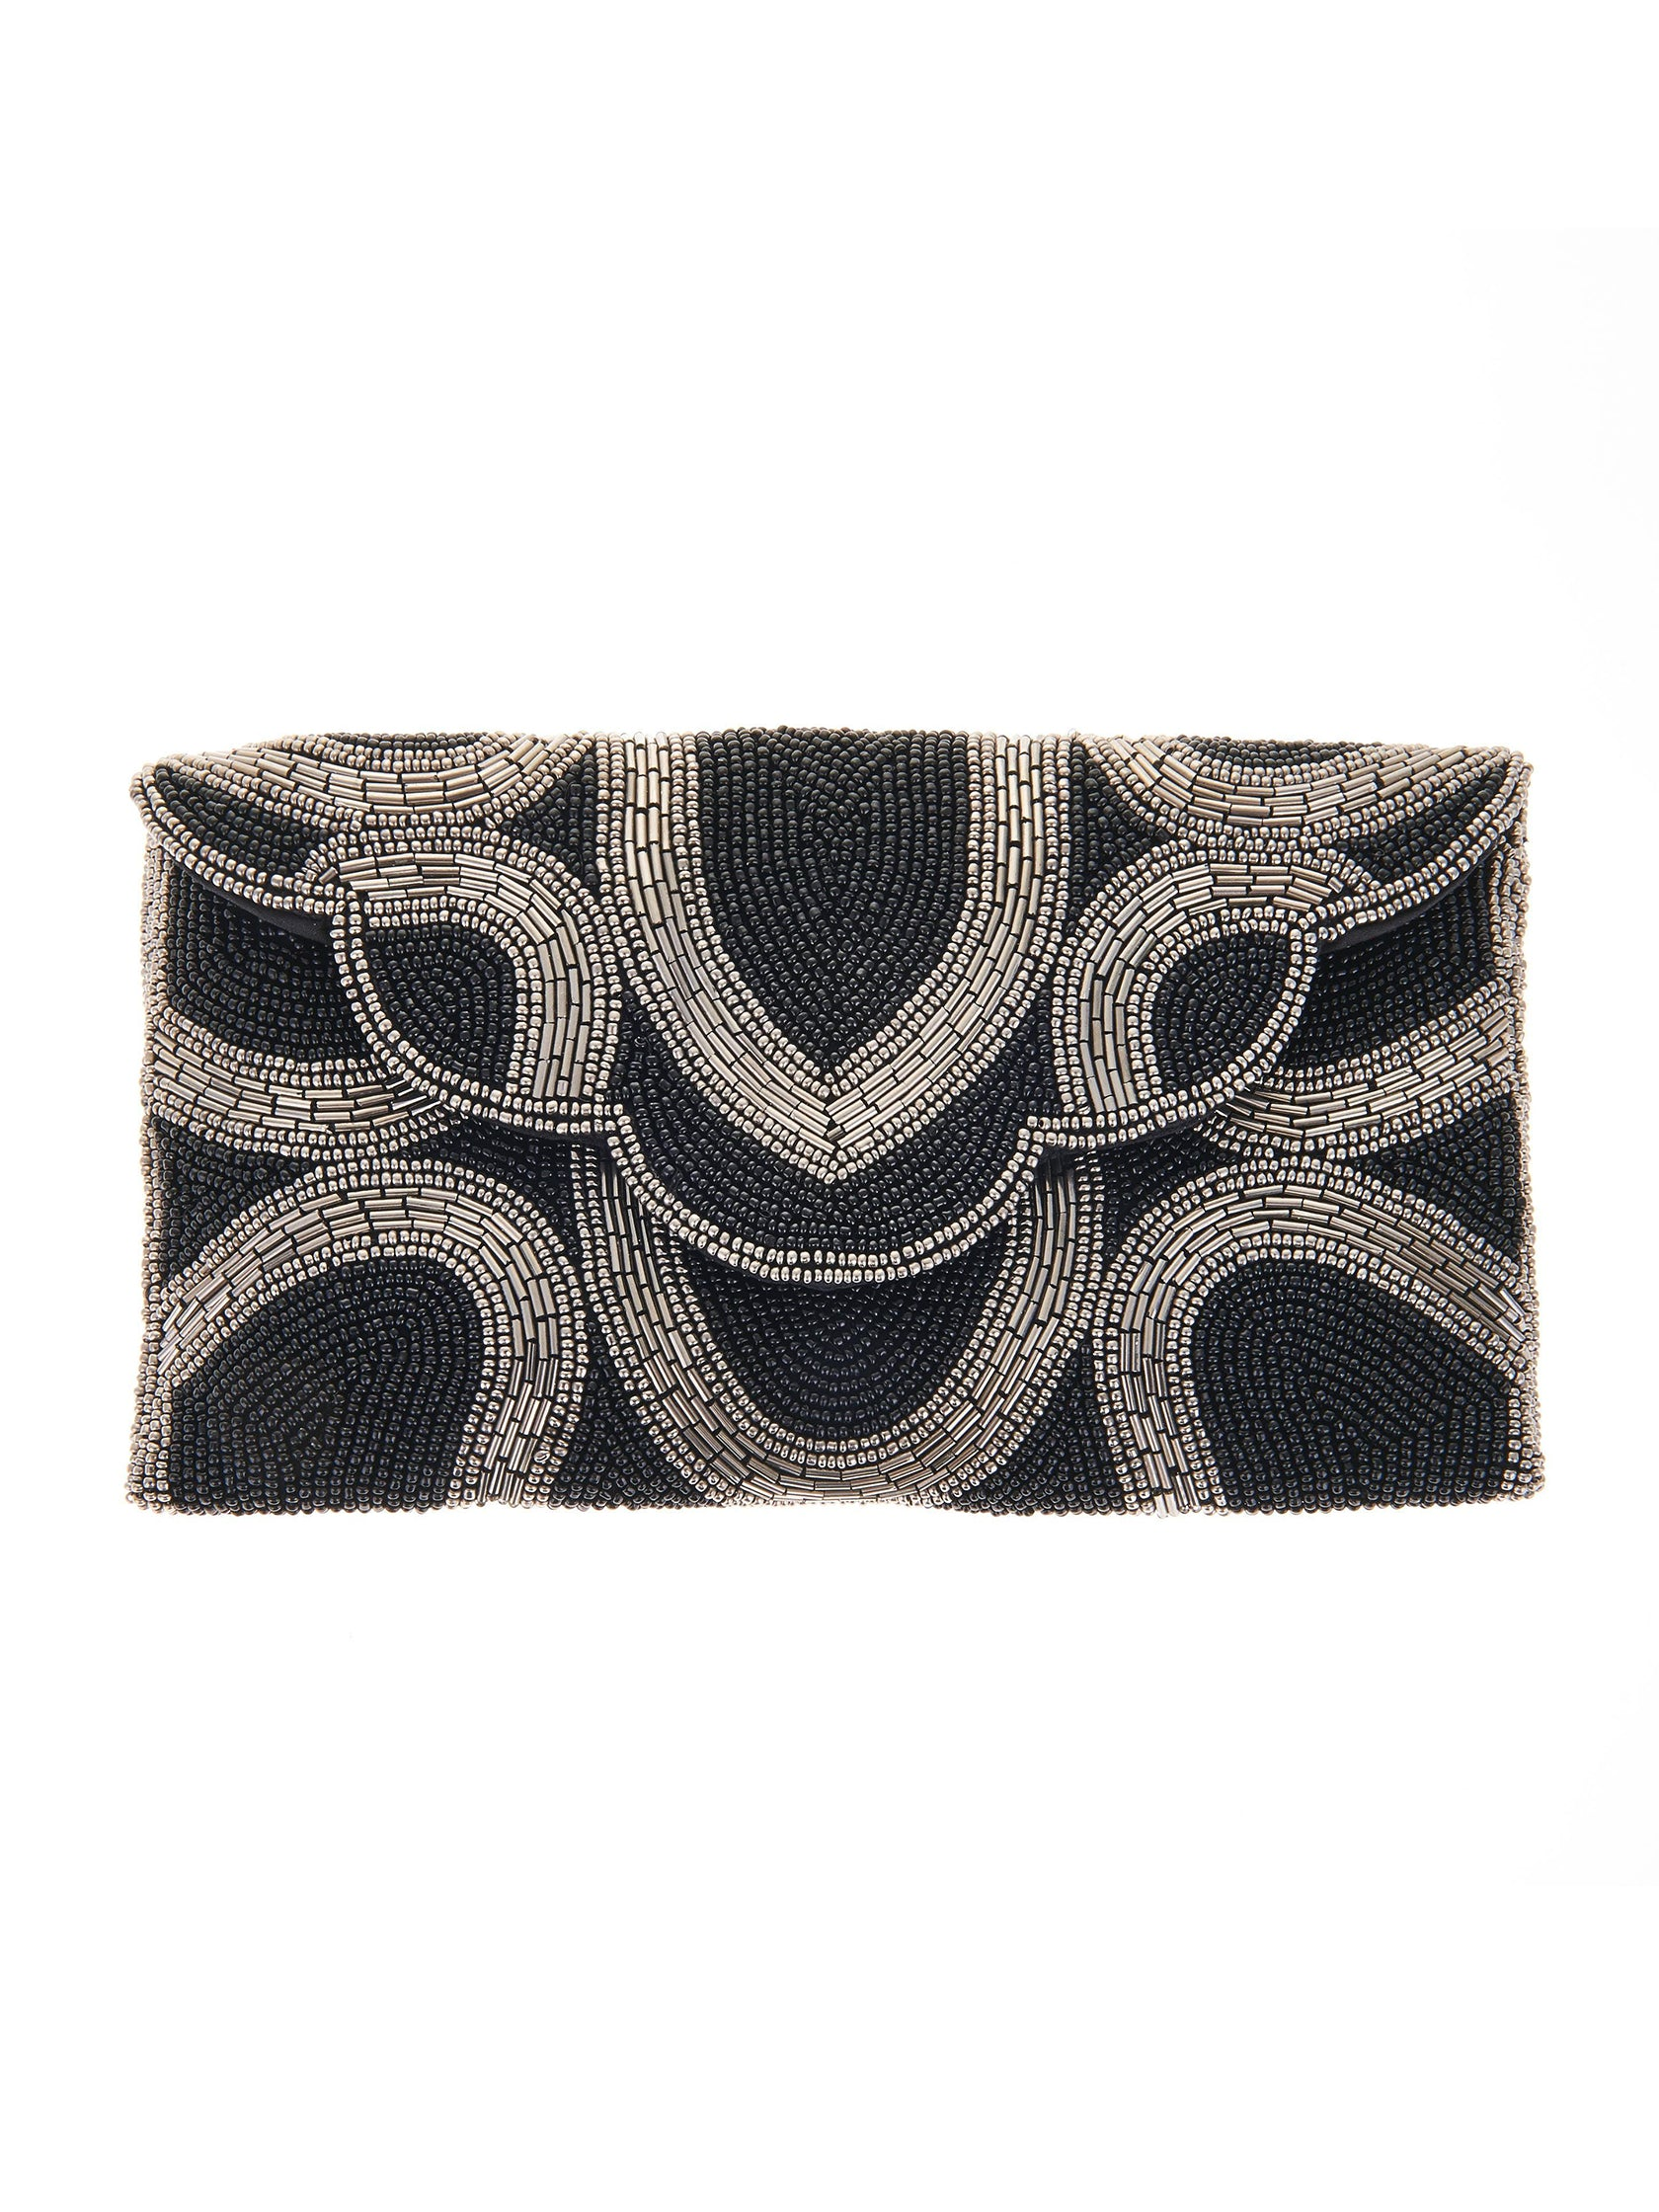 Women outfit in a purse rental from From St Xavier called Tove Clutch